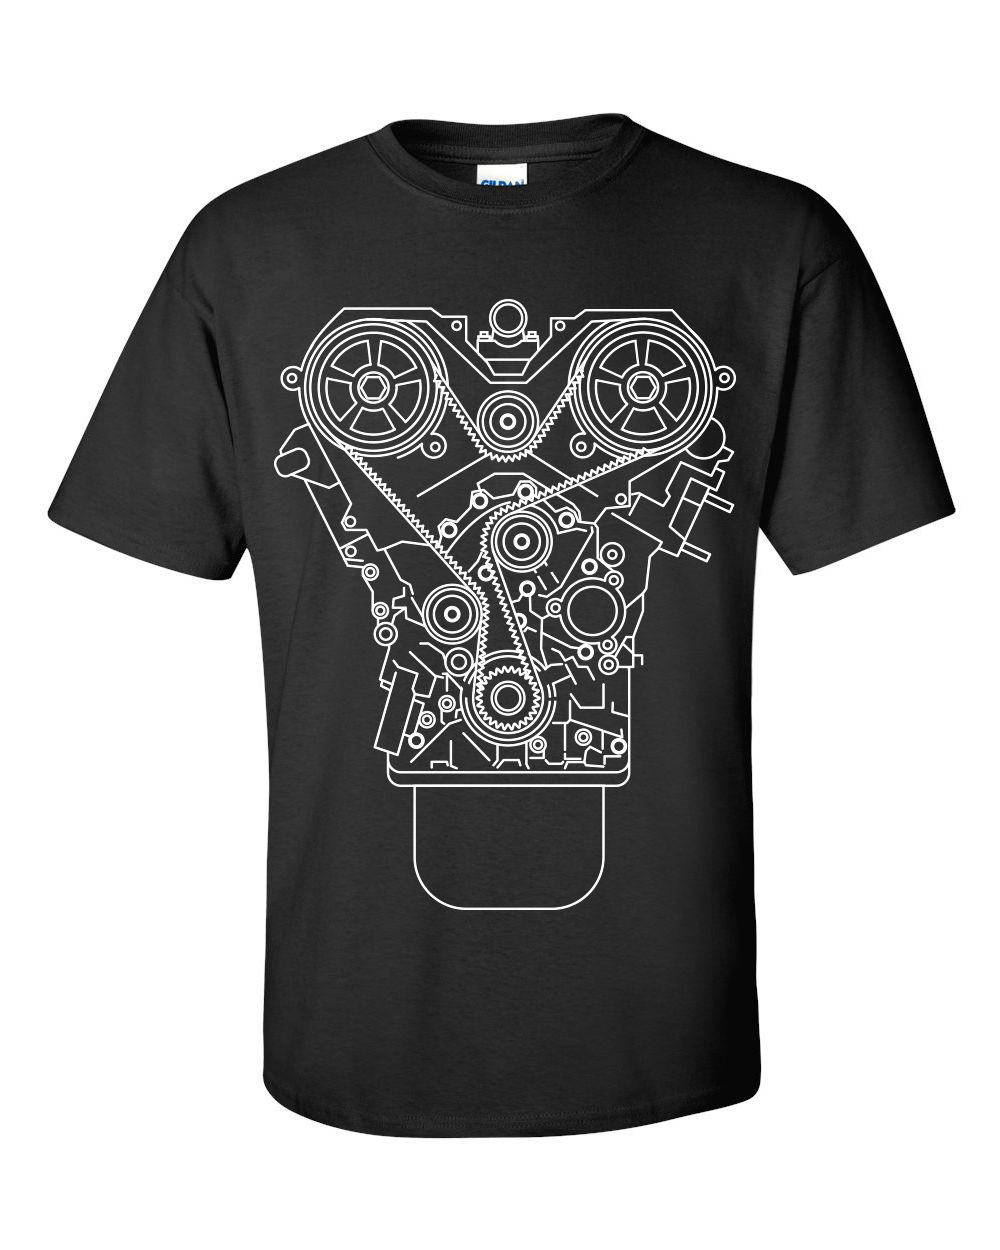 100% Cotton Brand New ENGINE DESIGN T-shirt Black S-3XL JDM Tuner Decal Mechanic Tool Garage Piston Summer Tee Shirt